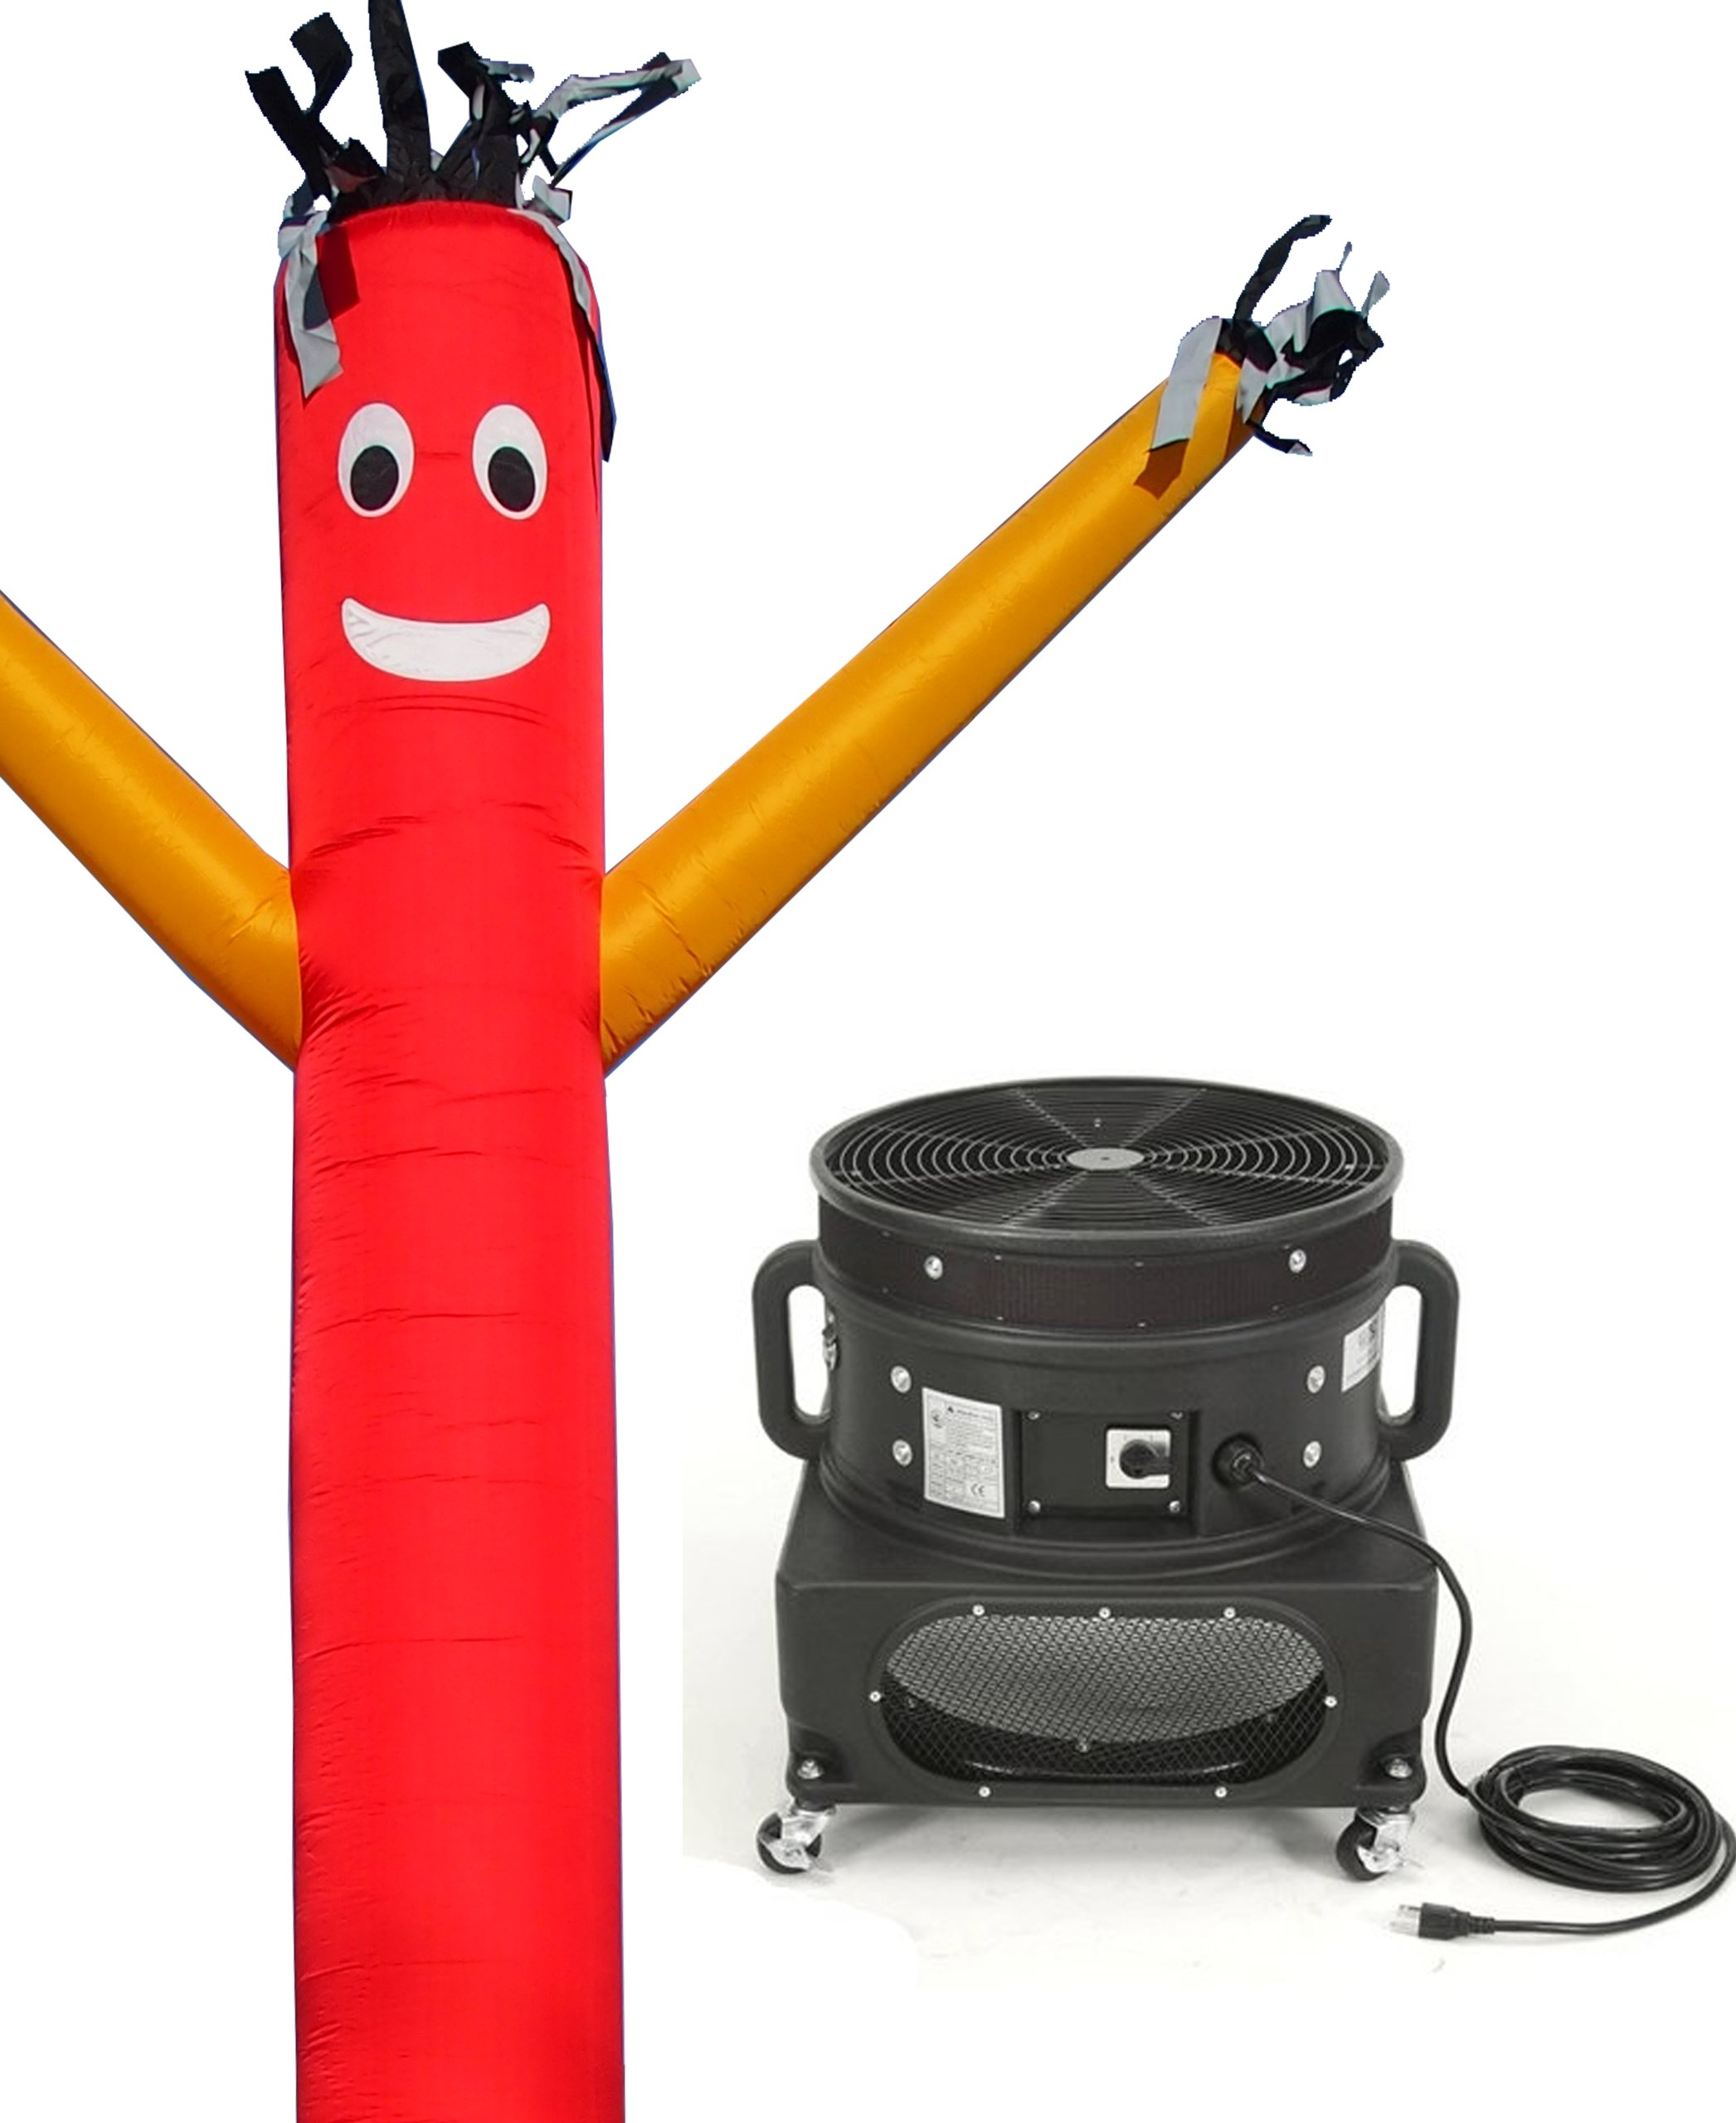 LookOurWay Air Dancers Inflatable Tube Man Complete Set with 1 HP Sky Dancer Blower, 20-Feet, Red with Yellow Arms